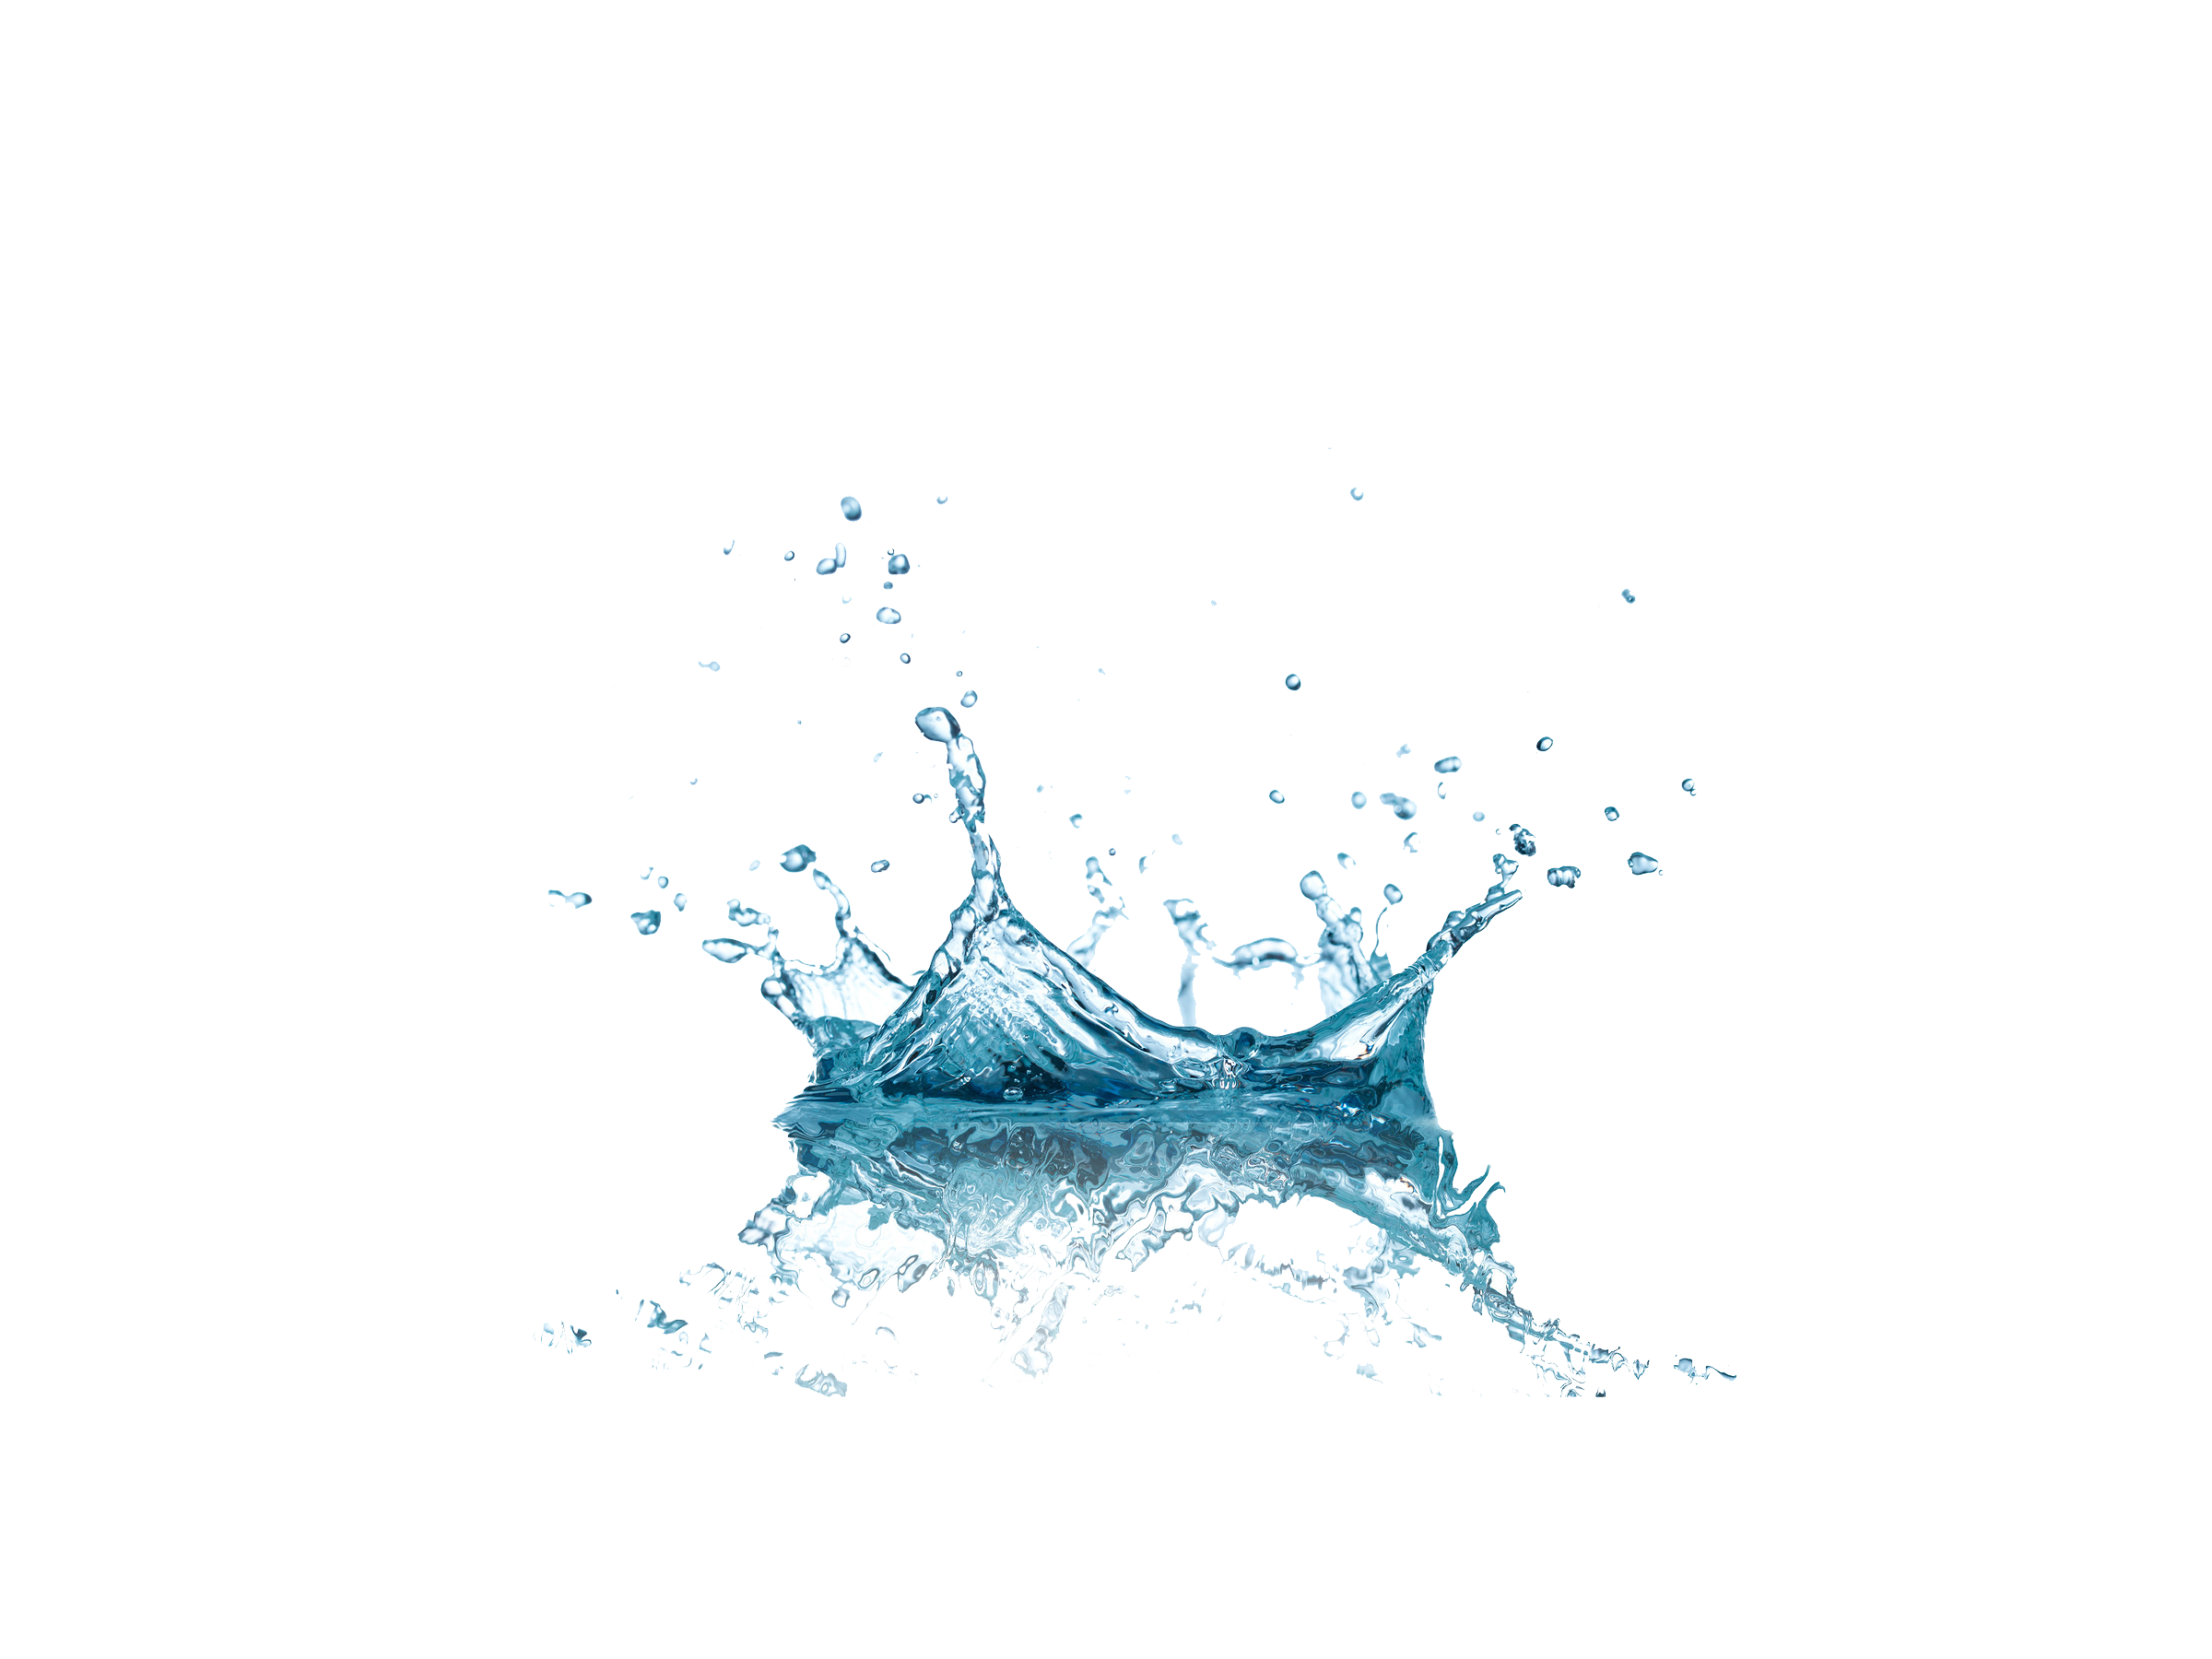 Water bottle splash png. Prayerbomb pinterest paintings